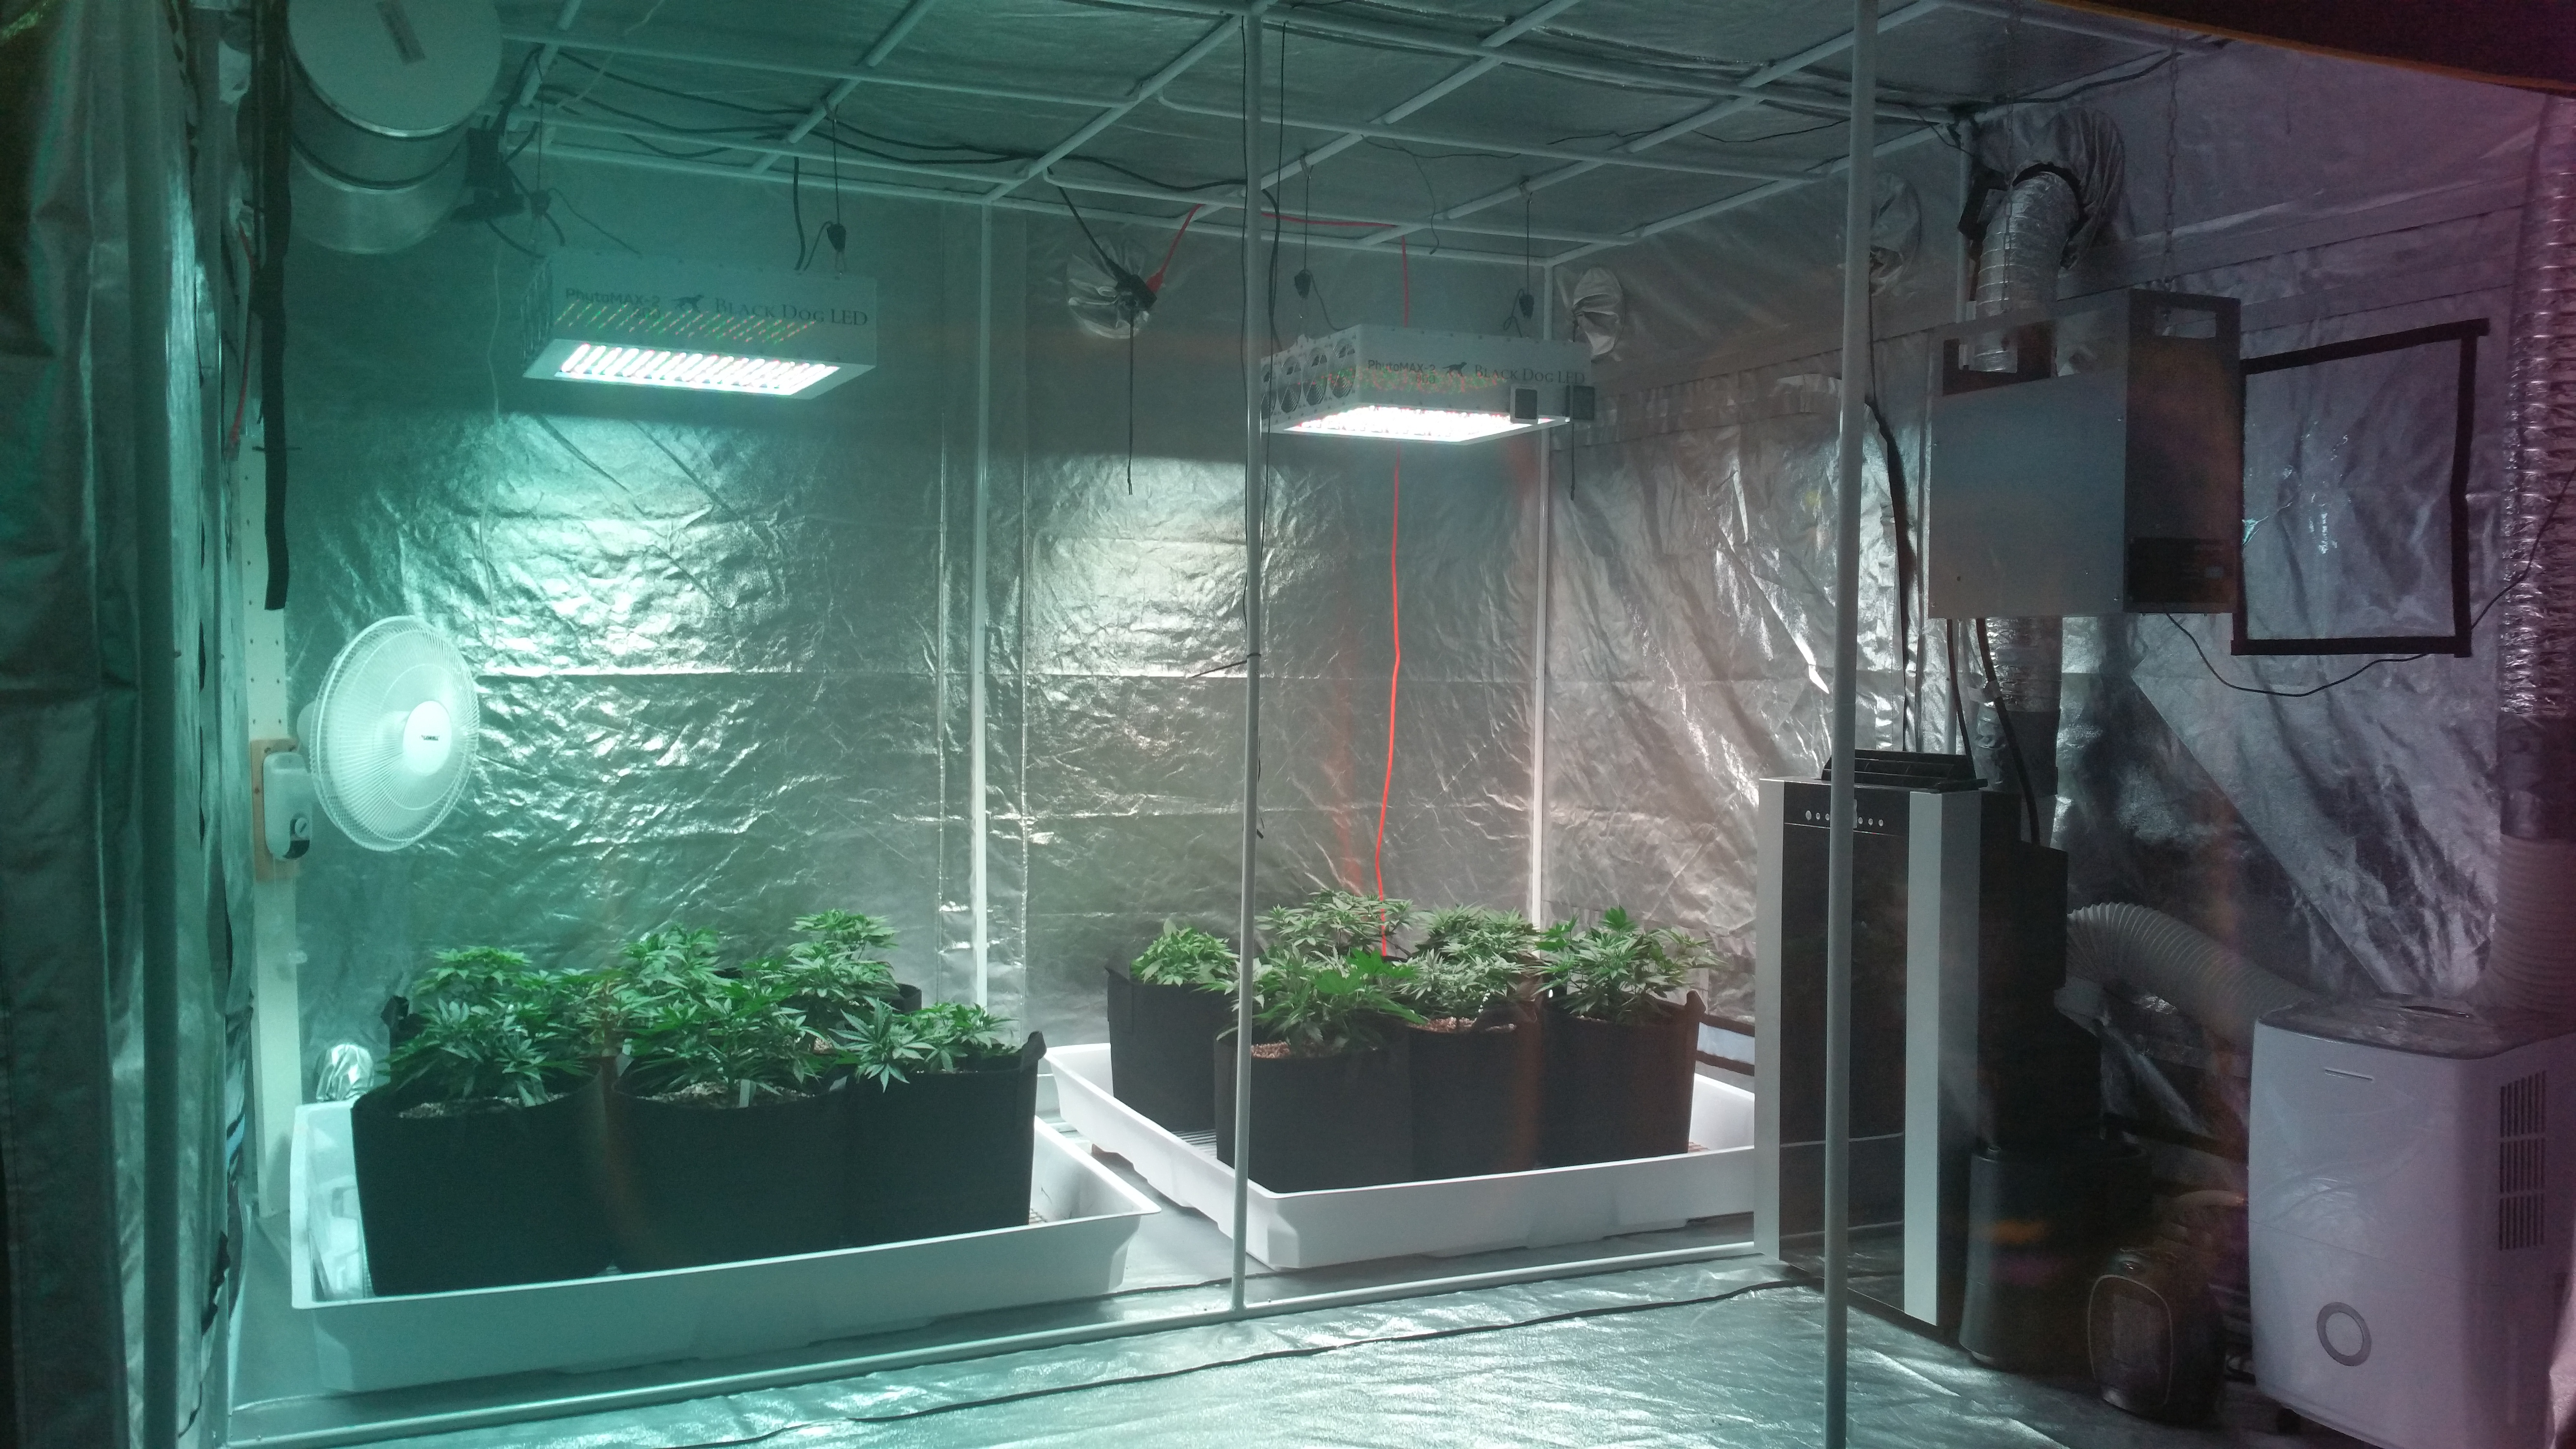 Air conditioner 2 humidifiers dehumidifier heater CO2 burner & Black dog LED grow--Harvest is in final yield results on page 61 ...